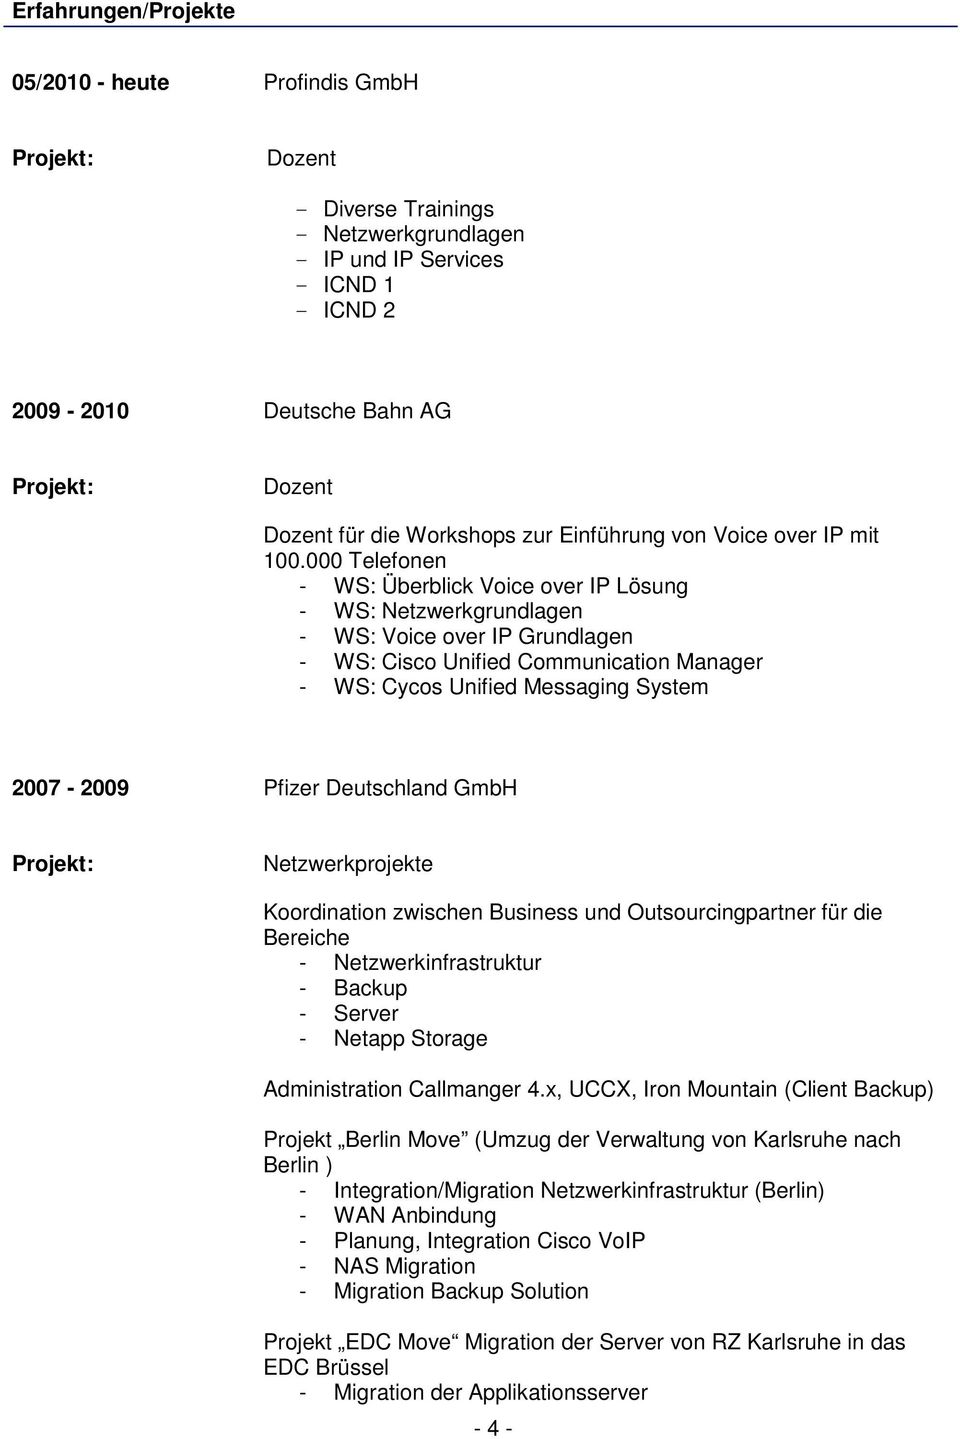 000 Telefonen - WS: Überblick Voice over IP Lösung - WS: Netzwerkgrundlagen - WS: Voice over IP Grundlagen - WS: Cisco Unified Communication Manager - WS: Cycos Unified Messaging System 2007-2009